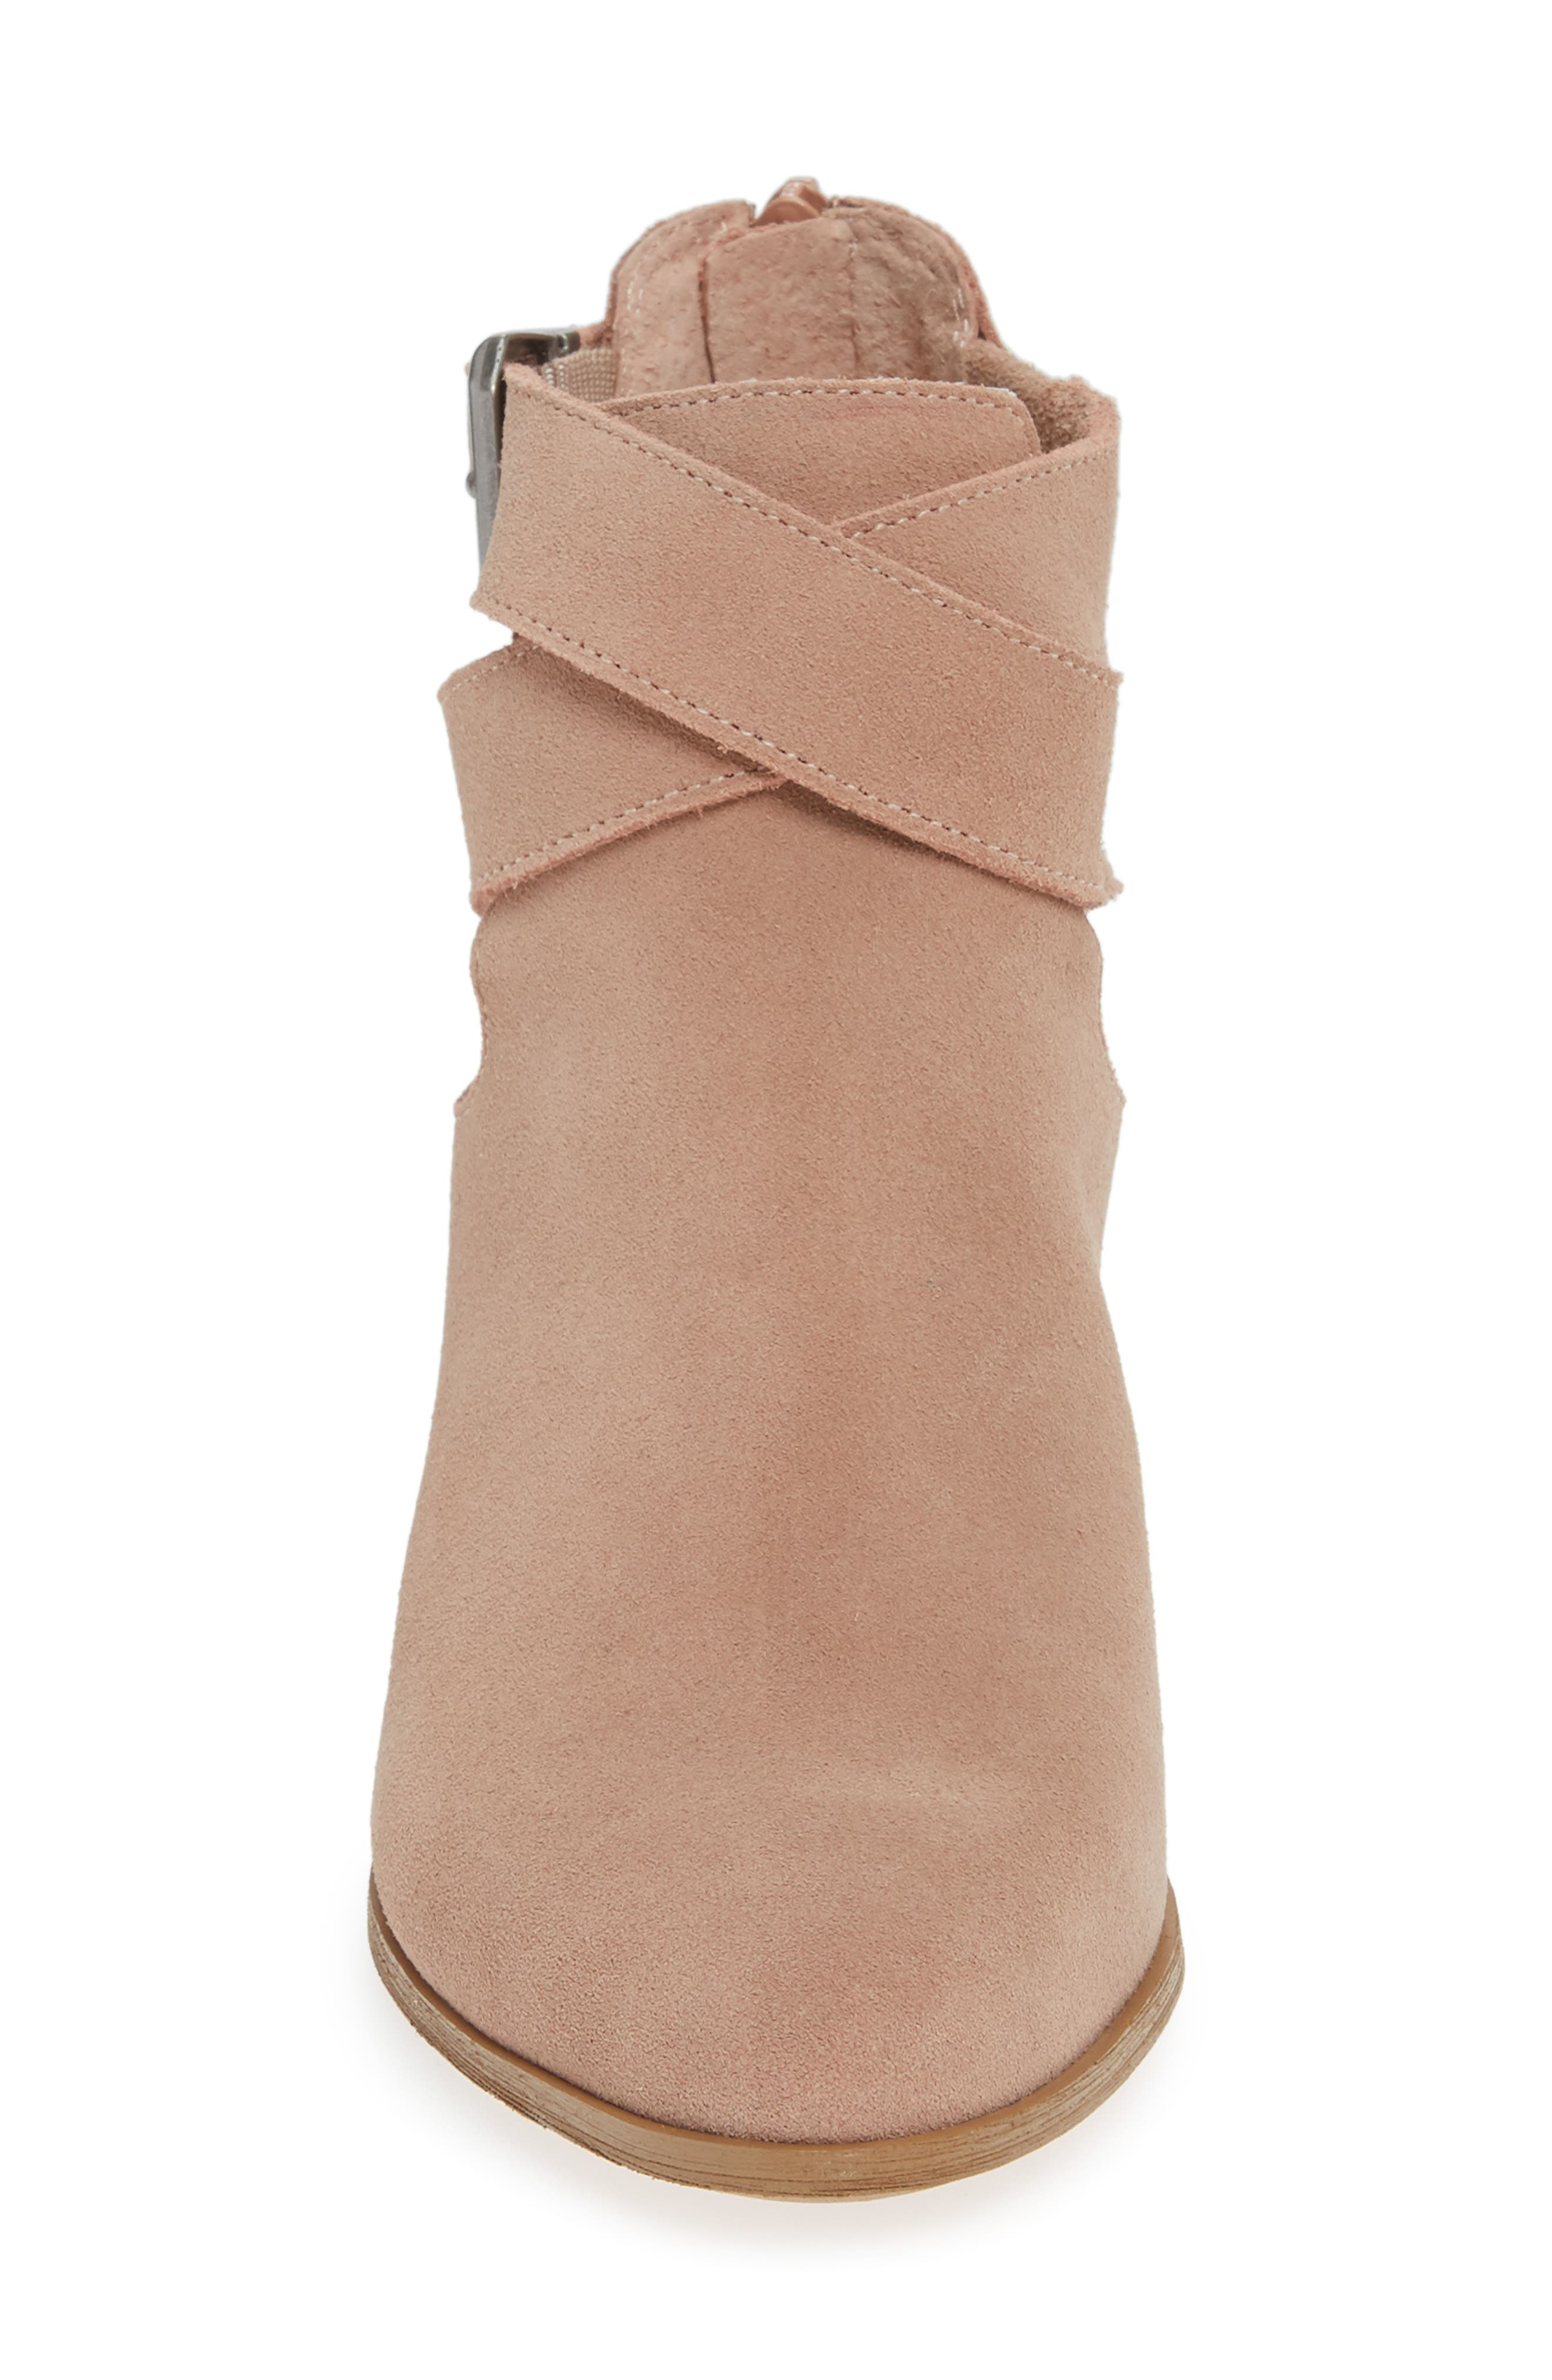 Azure Bootie,                             Alternate thumbnail 4, color,                             DUSTY ROSE SUEDE